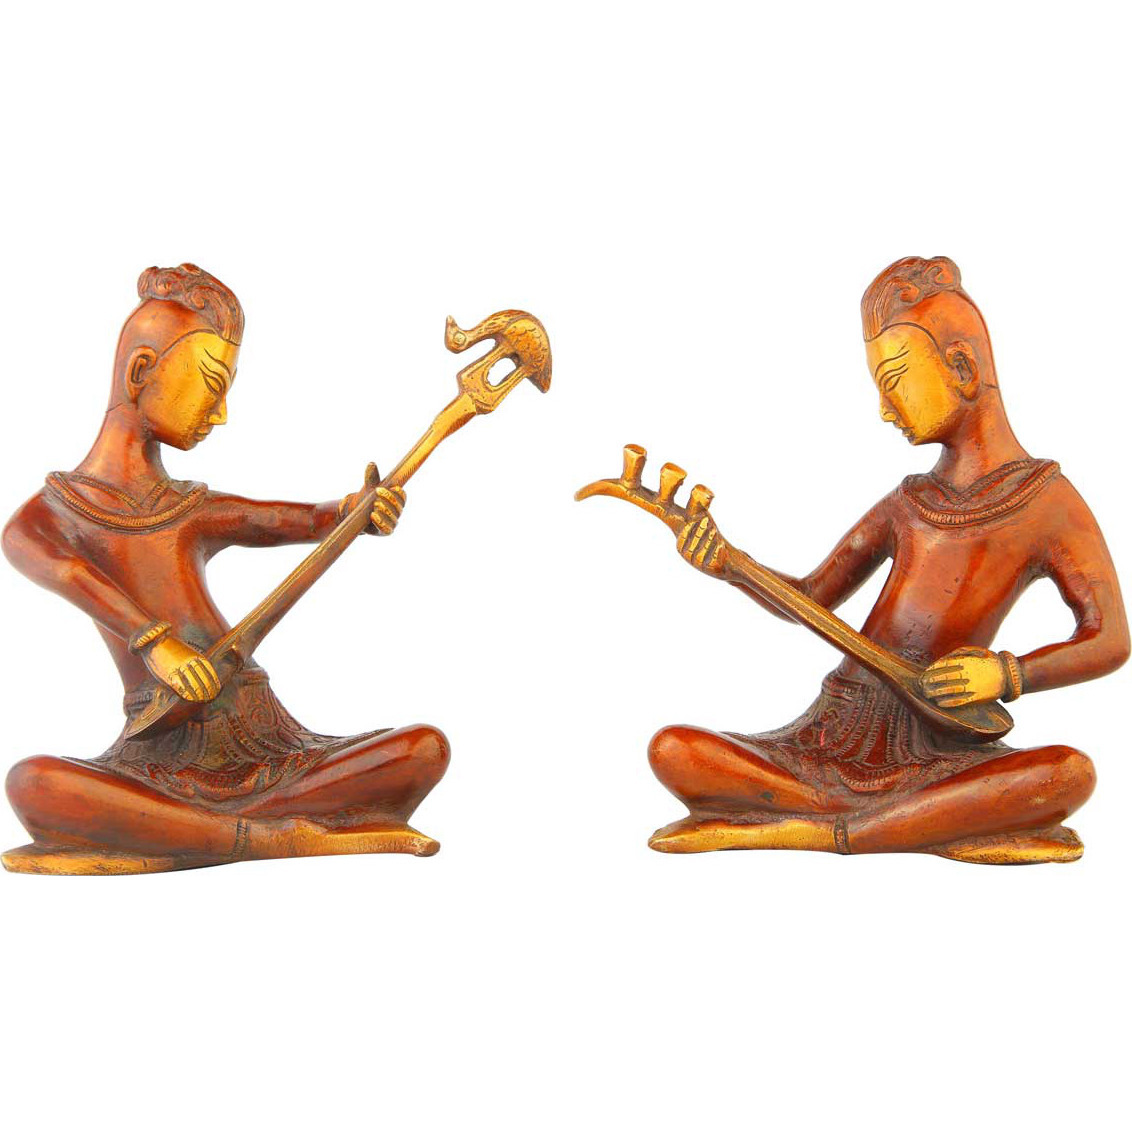 Indian brass musical band 2 pcs showpiece home table dicor statue gift set 6